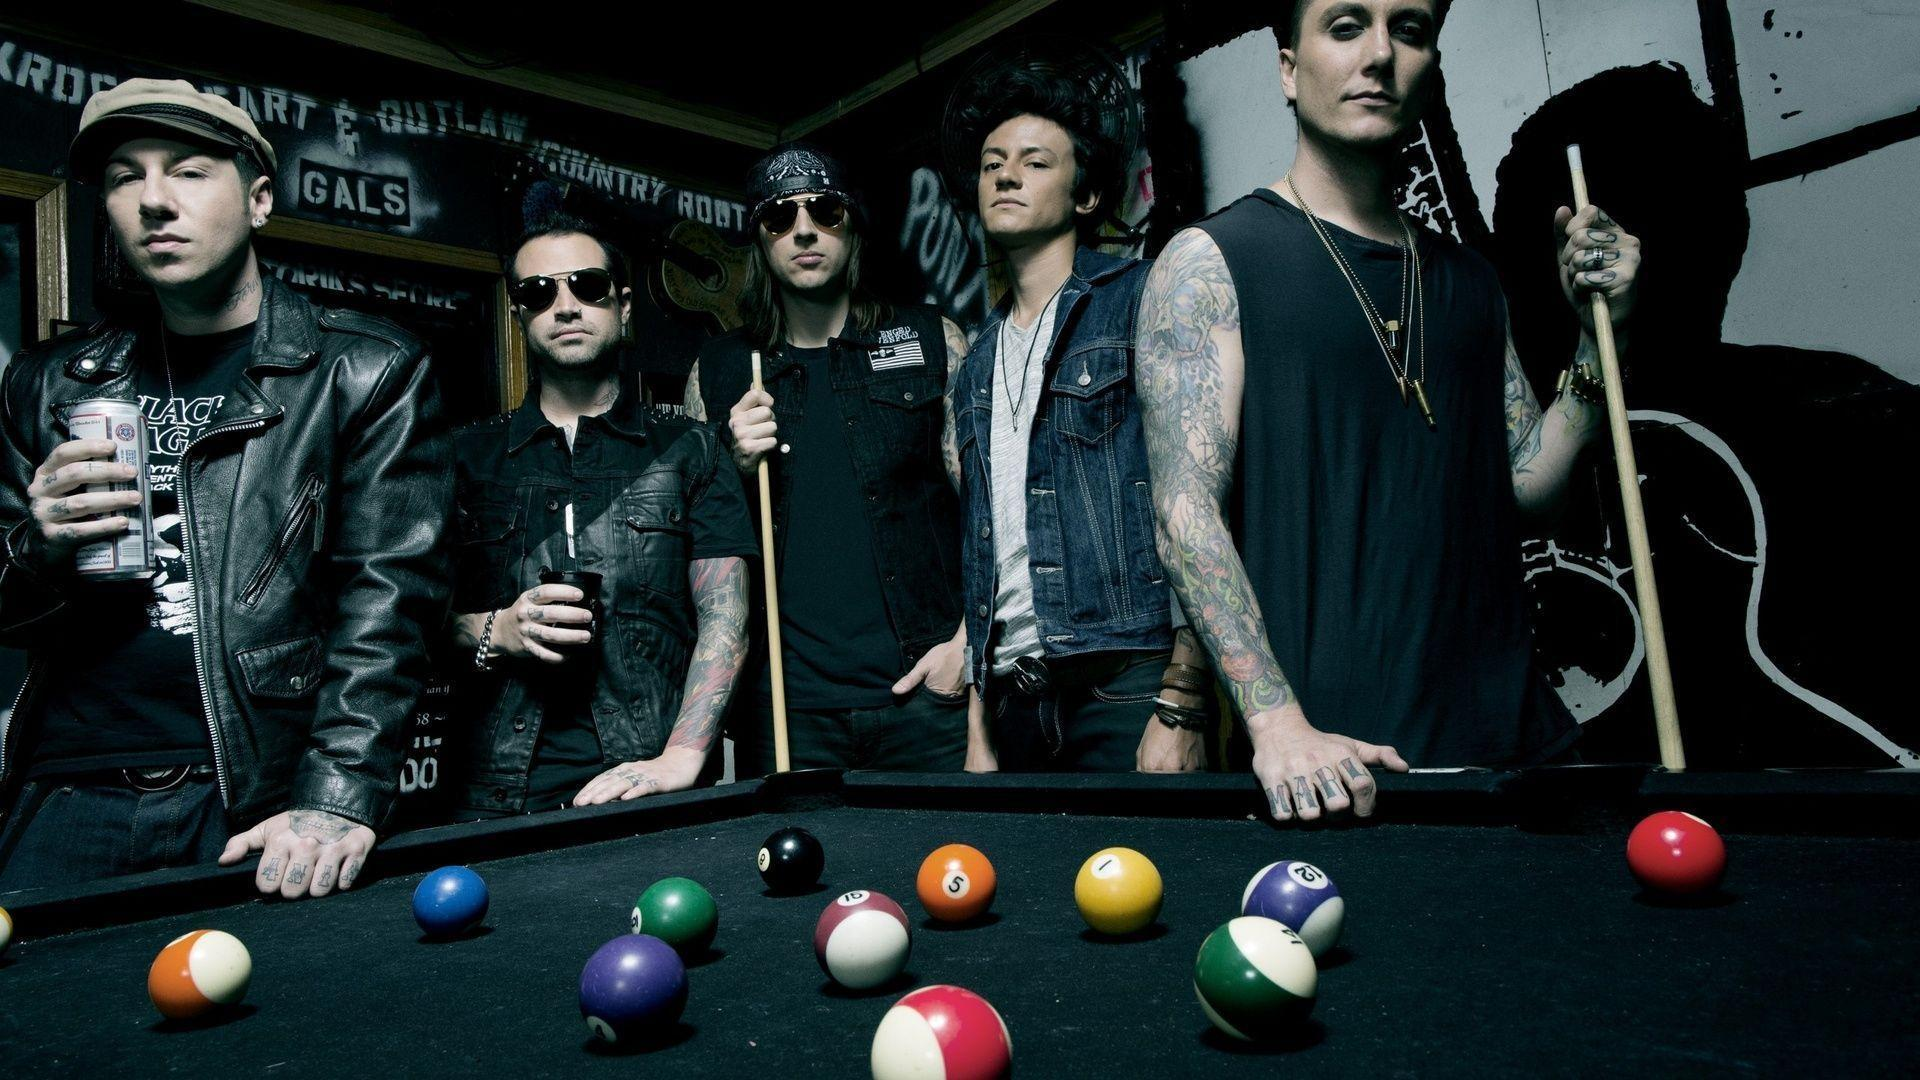 1920x1080 A7x Group Avenged Sevenfold Music Hard Rock Zacky